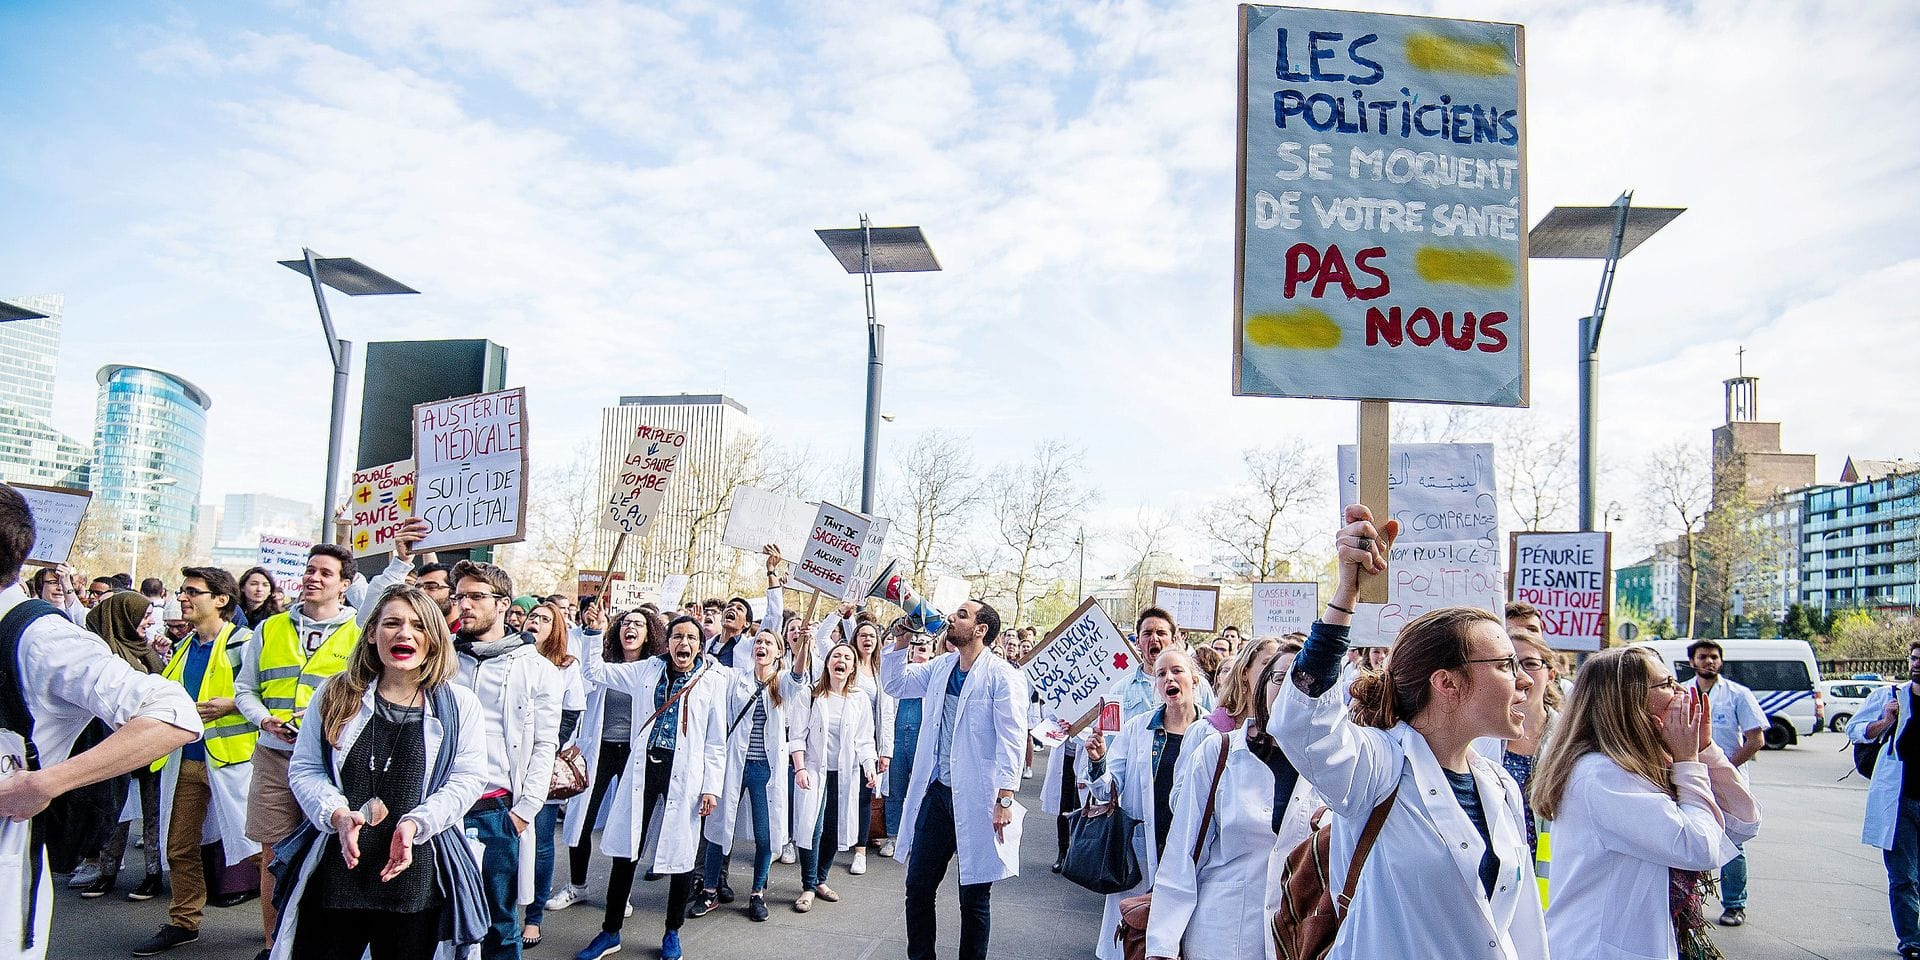 Illustration picture shows a protest of medical students at the cabinet of the Health Minister, Thursday 30 March 2017 in Brussels. The students are claiming lack of funds to handle the 'double cohorte' of two generations of students looking for internships at the same time, due to the shortened educational program. BELGA PHOTO LAURIE DIEFFEMBACQ